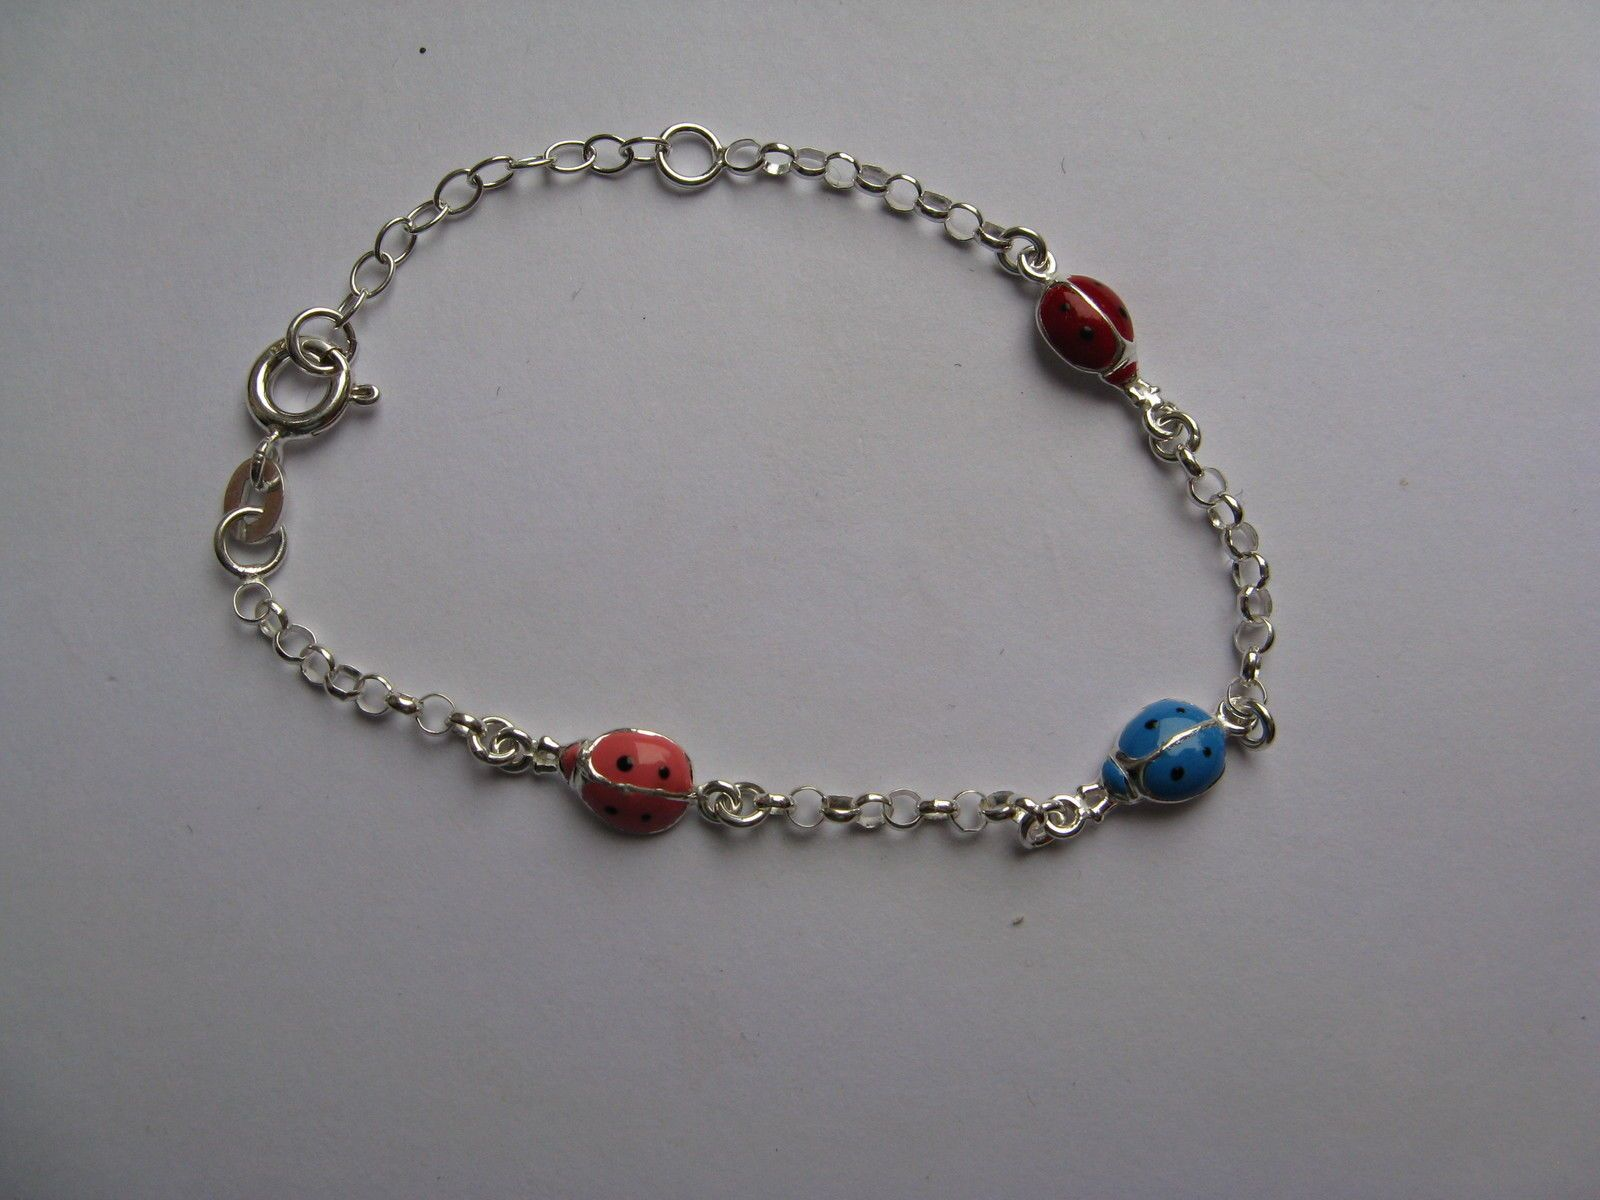 school charm blackberry to kids bracelet child jewelry designs s back personalized products childs girls birthstone